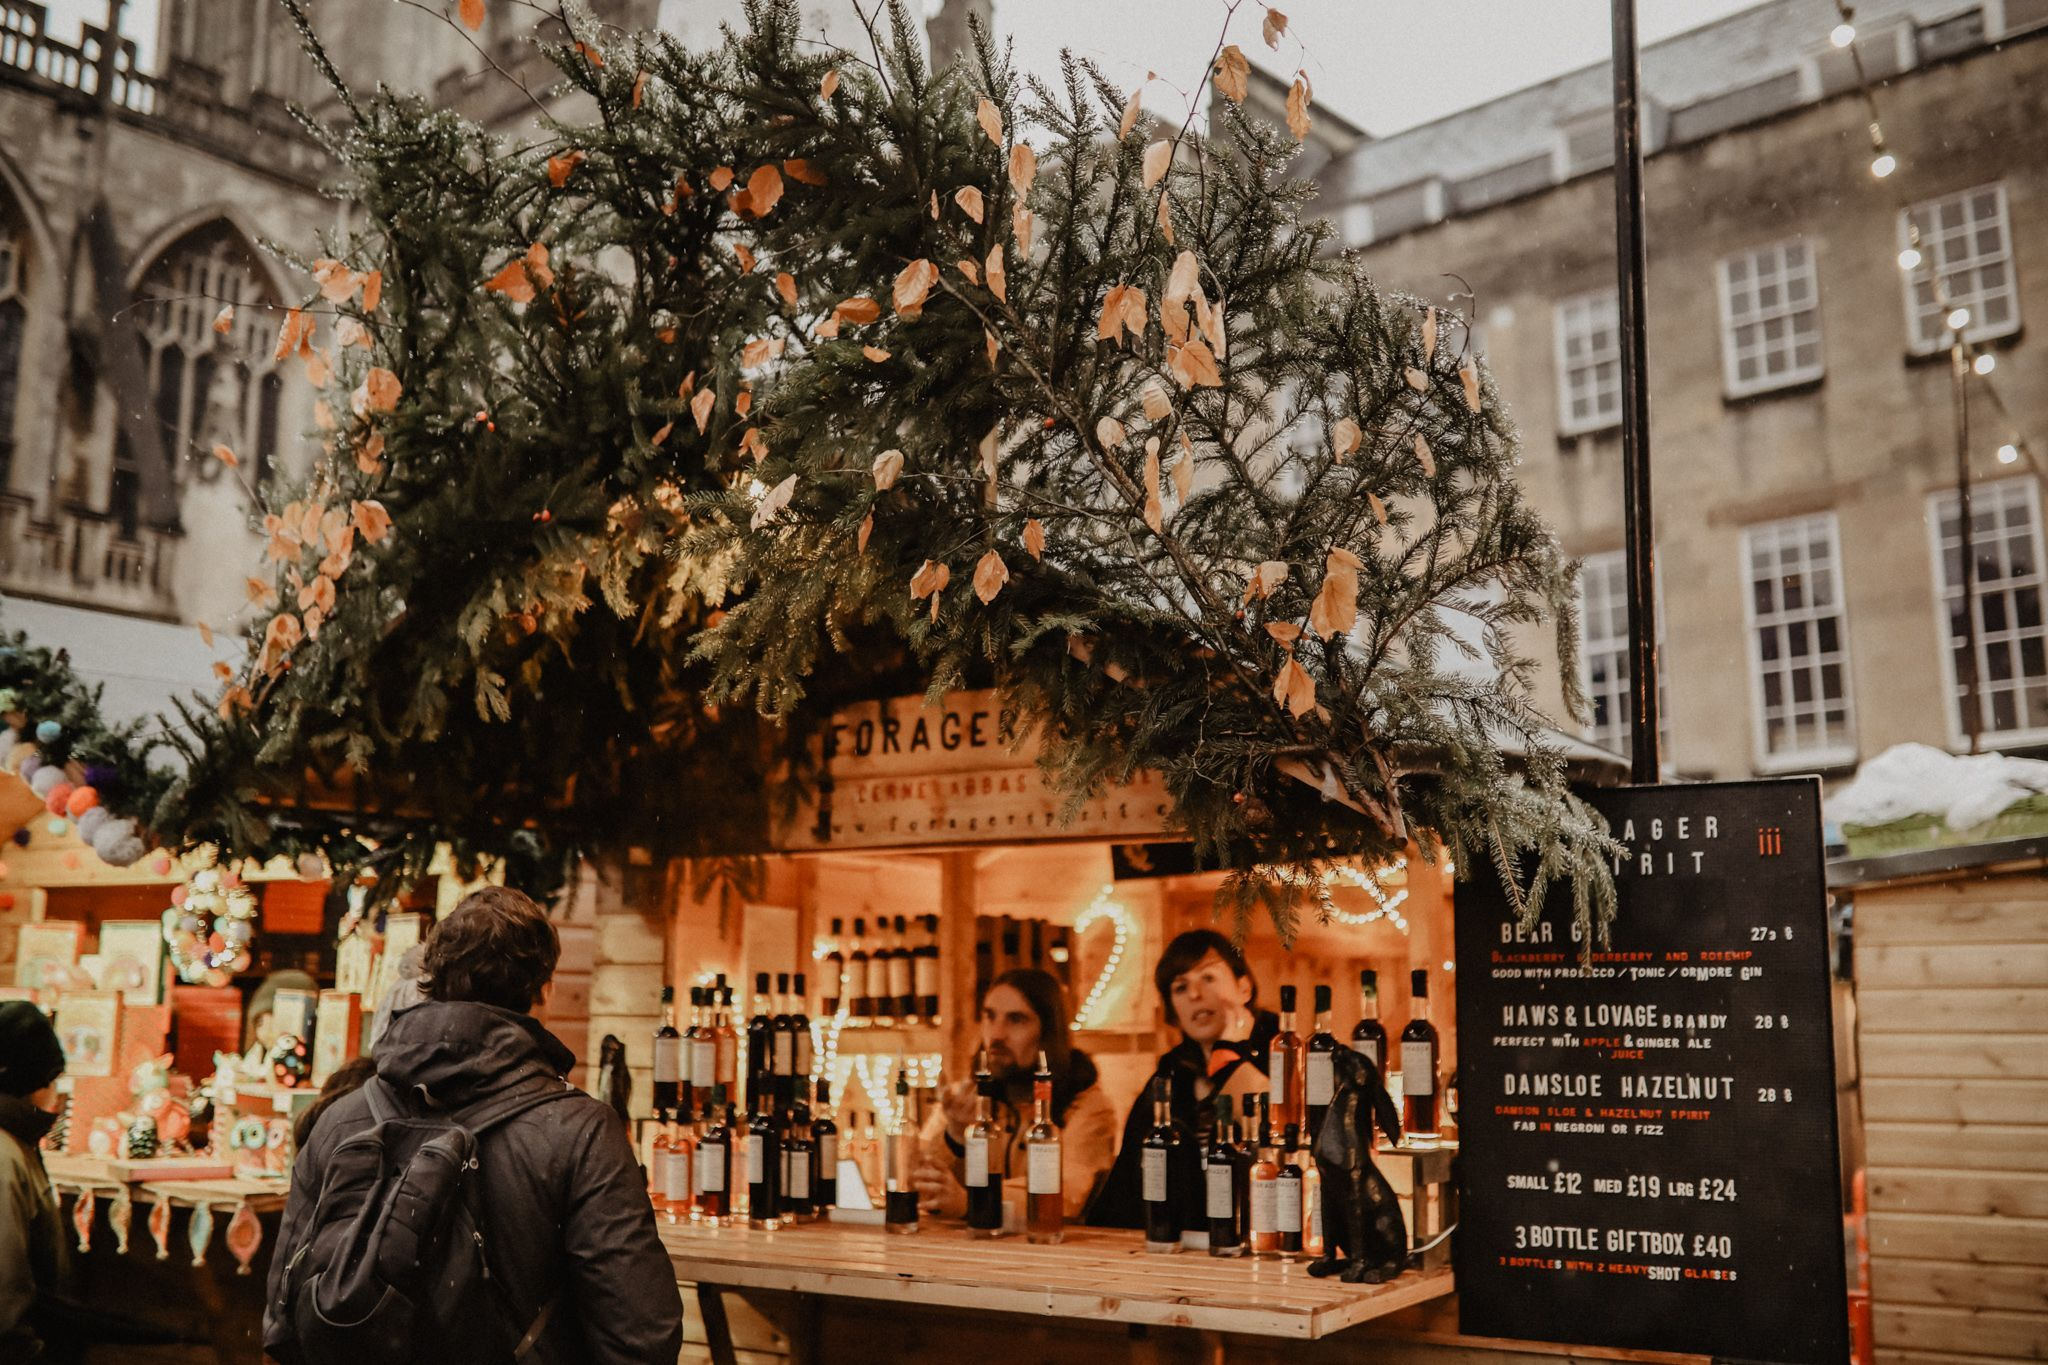 Christmas in Bath: get festive at the Christmas market